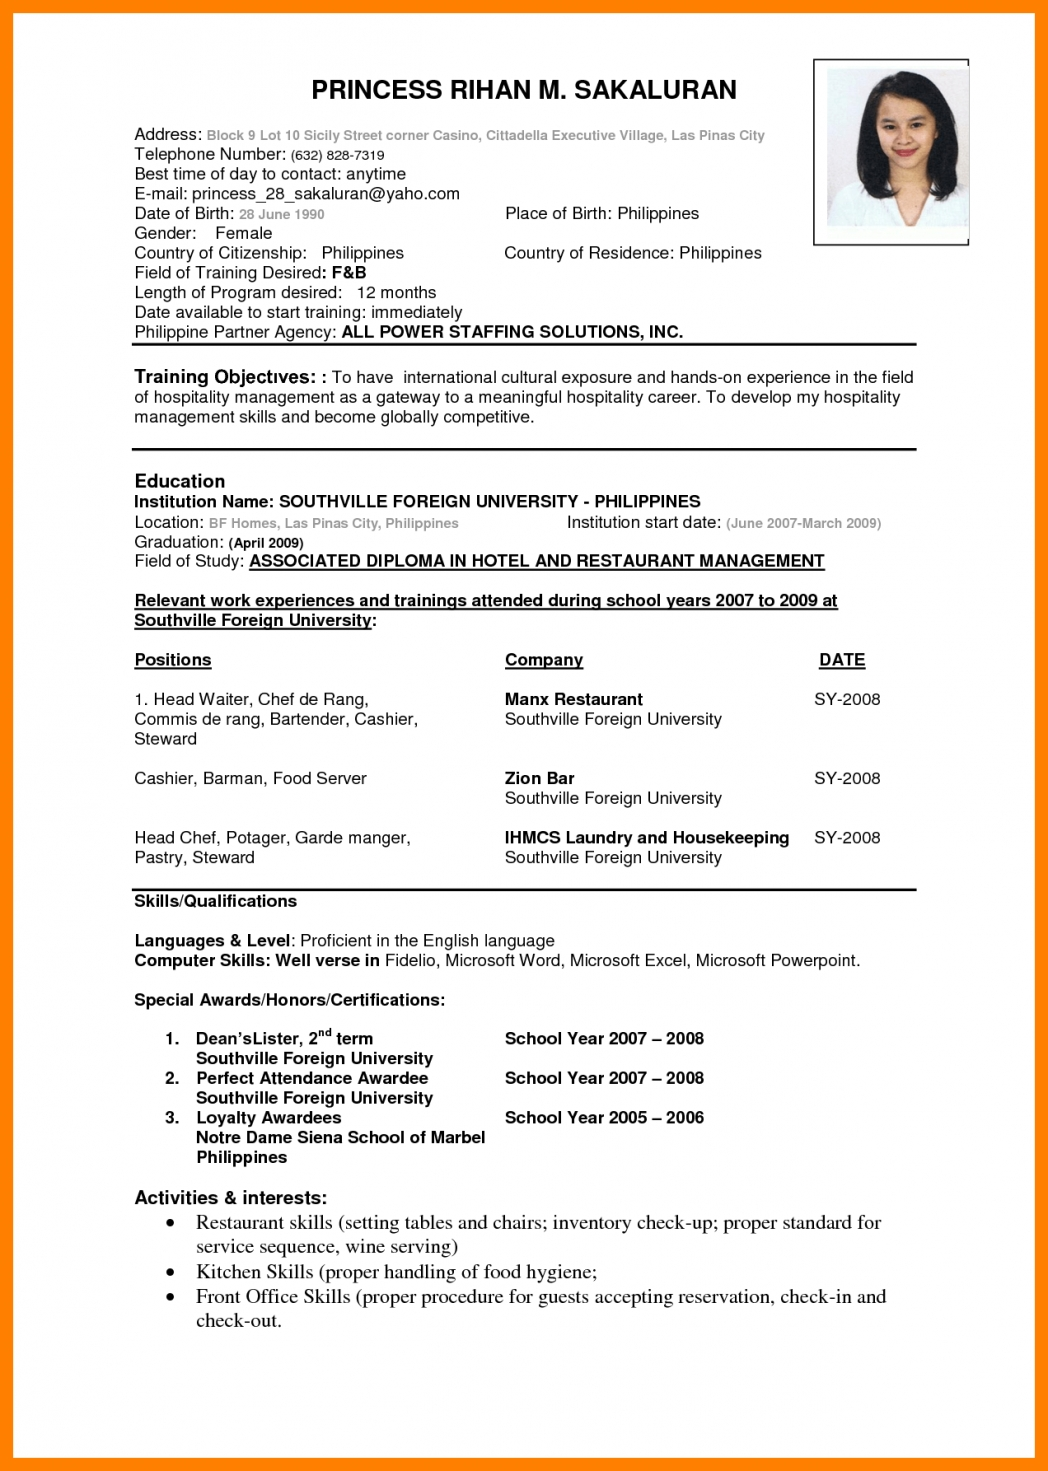 Resume Format For Overseas Job Cv Format Free Download Elsevier Social Sciences